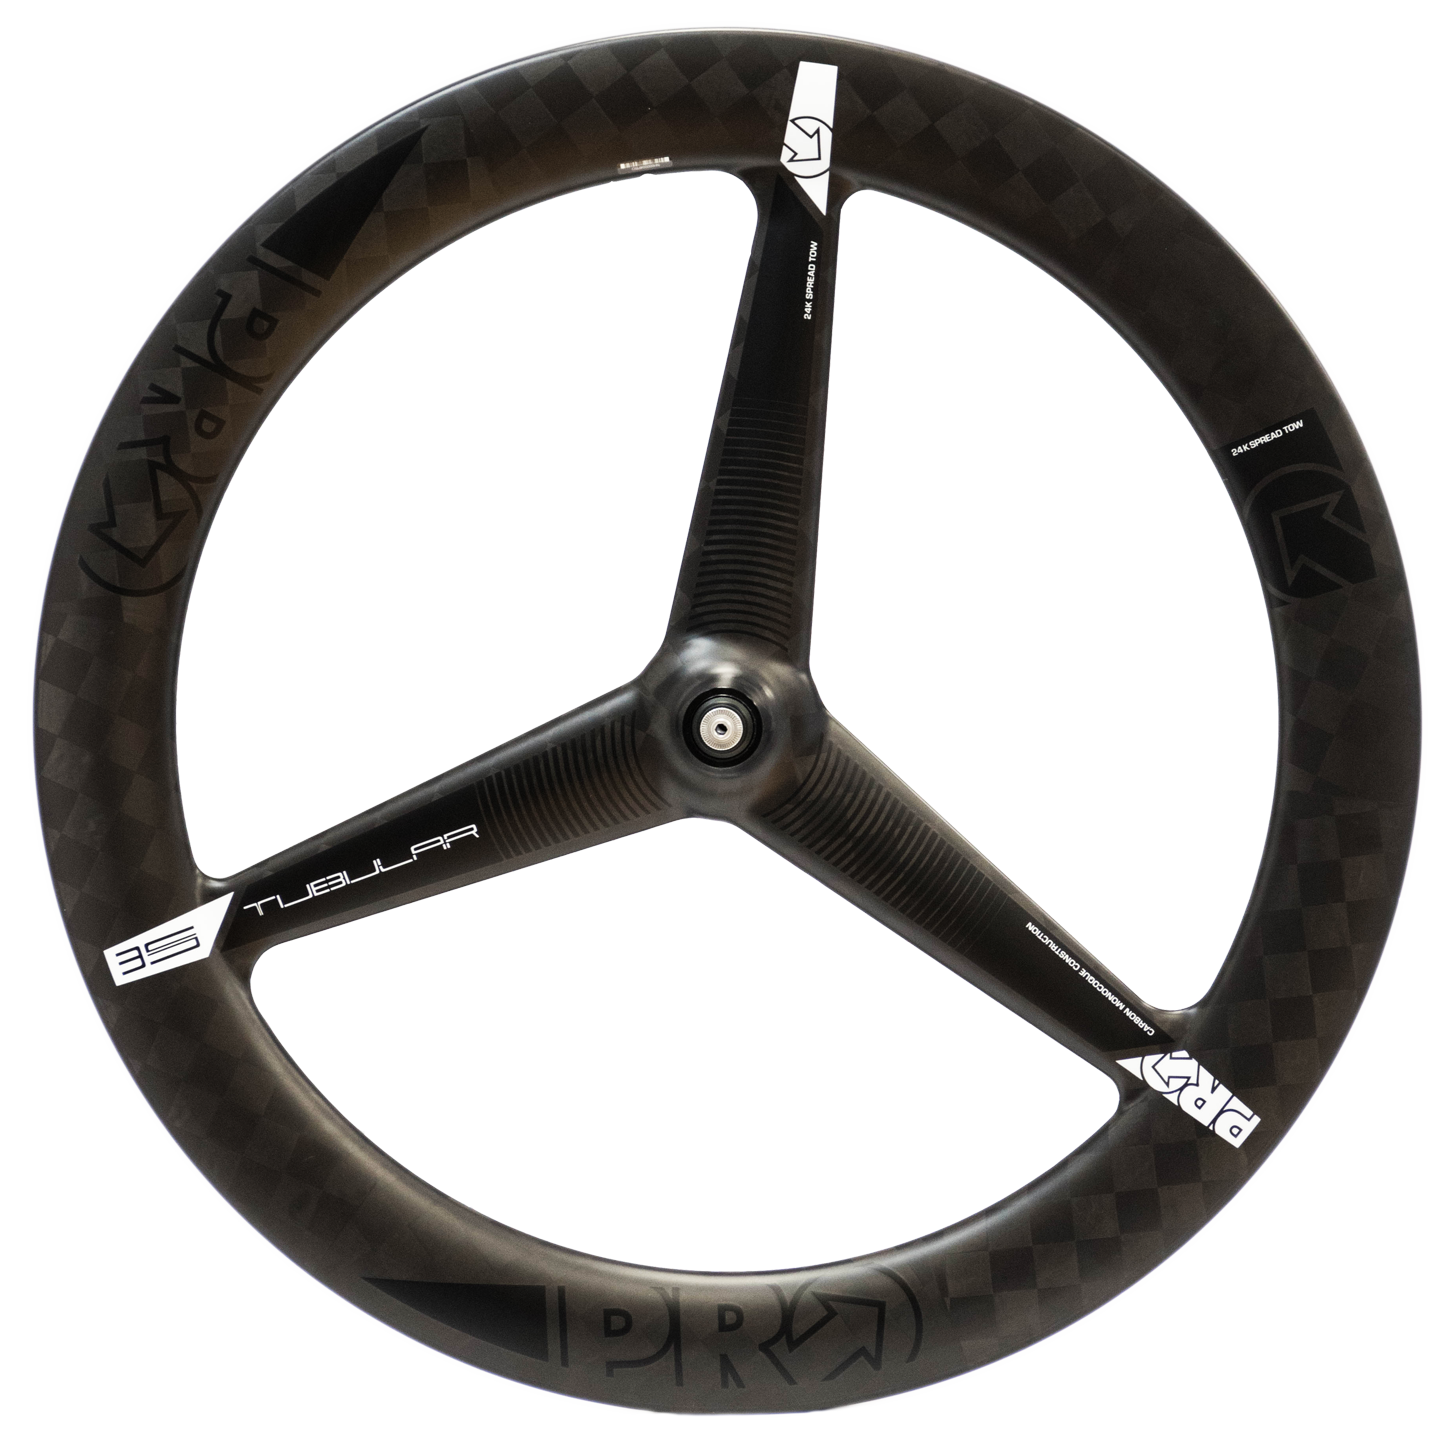 Shimano Pro 3 Spoke Front Track Wheel